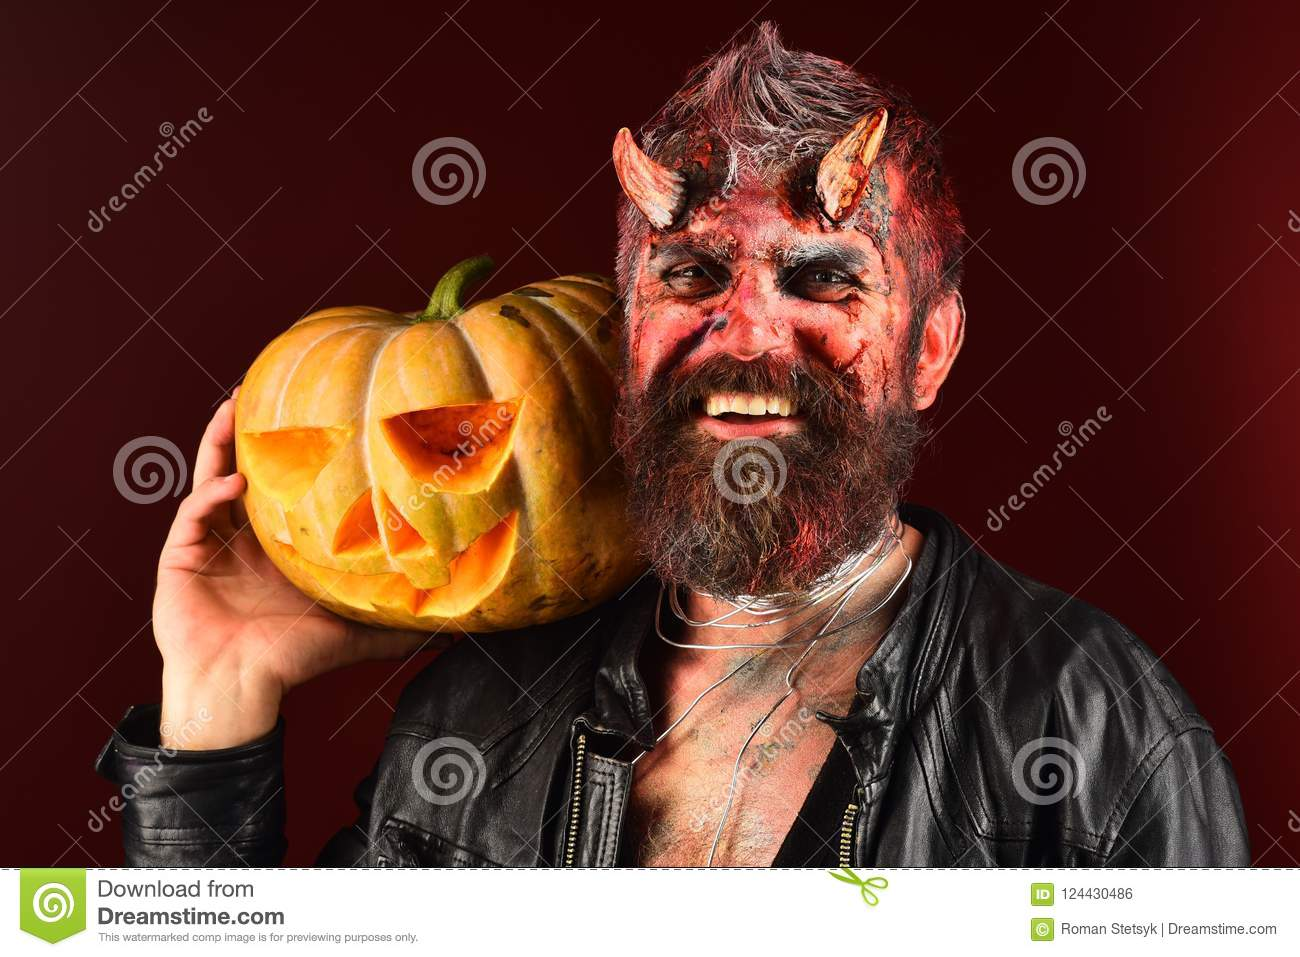 Scary Halloween Makeup For Guys With Beards.Man Wearing Scary Makeup Holds Pumpkin On Bloody Red